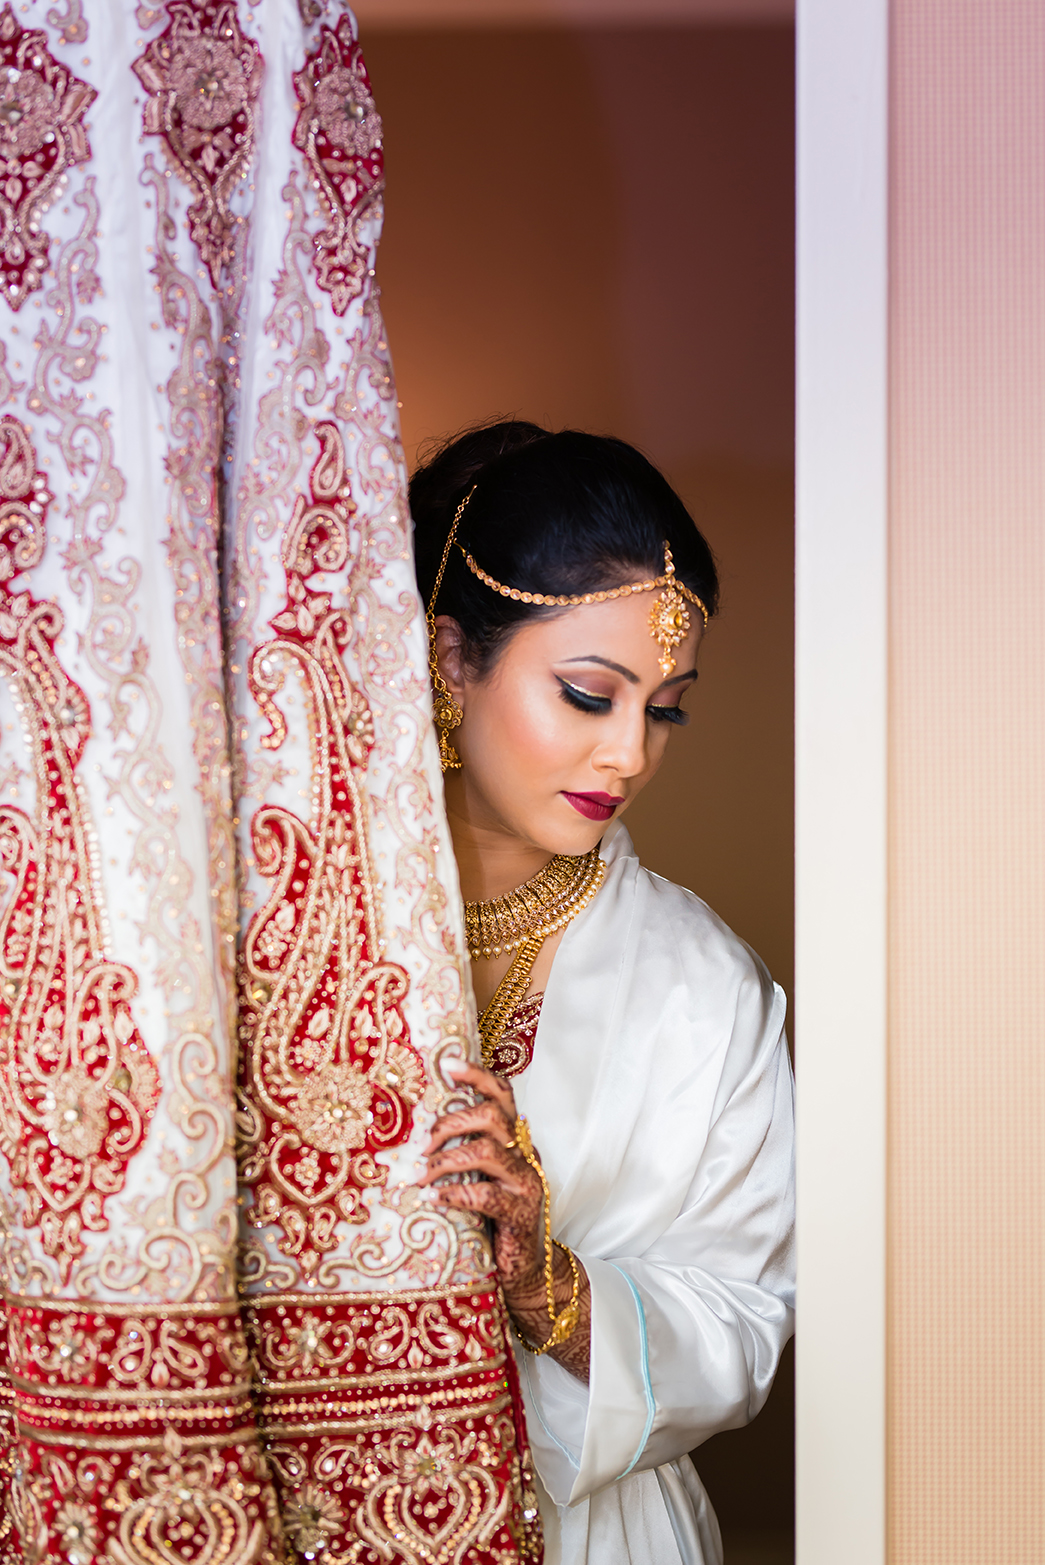 south_asian_wedding_photography_dhoom_studio_new_york44 SOUTH ASIAN WEDDINGS